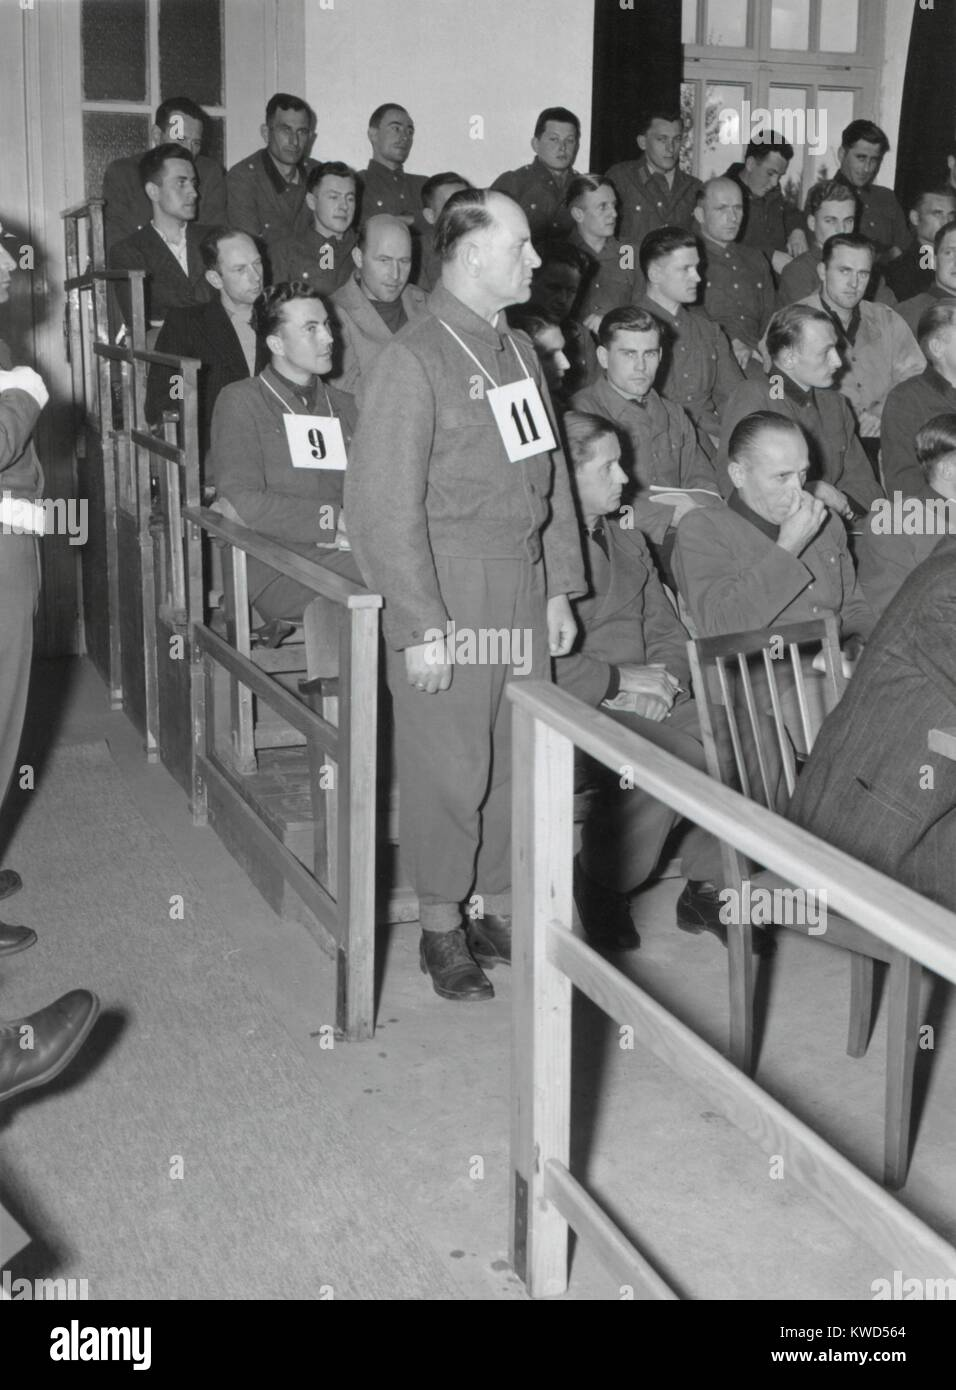 Josep Dietrich, Commander of the 6th Nazi SS Panzer Army, on trial for Malmedy Massacre. Standing with #11 hanging Stock Photo